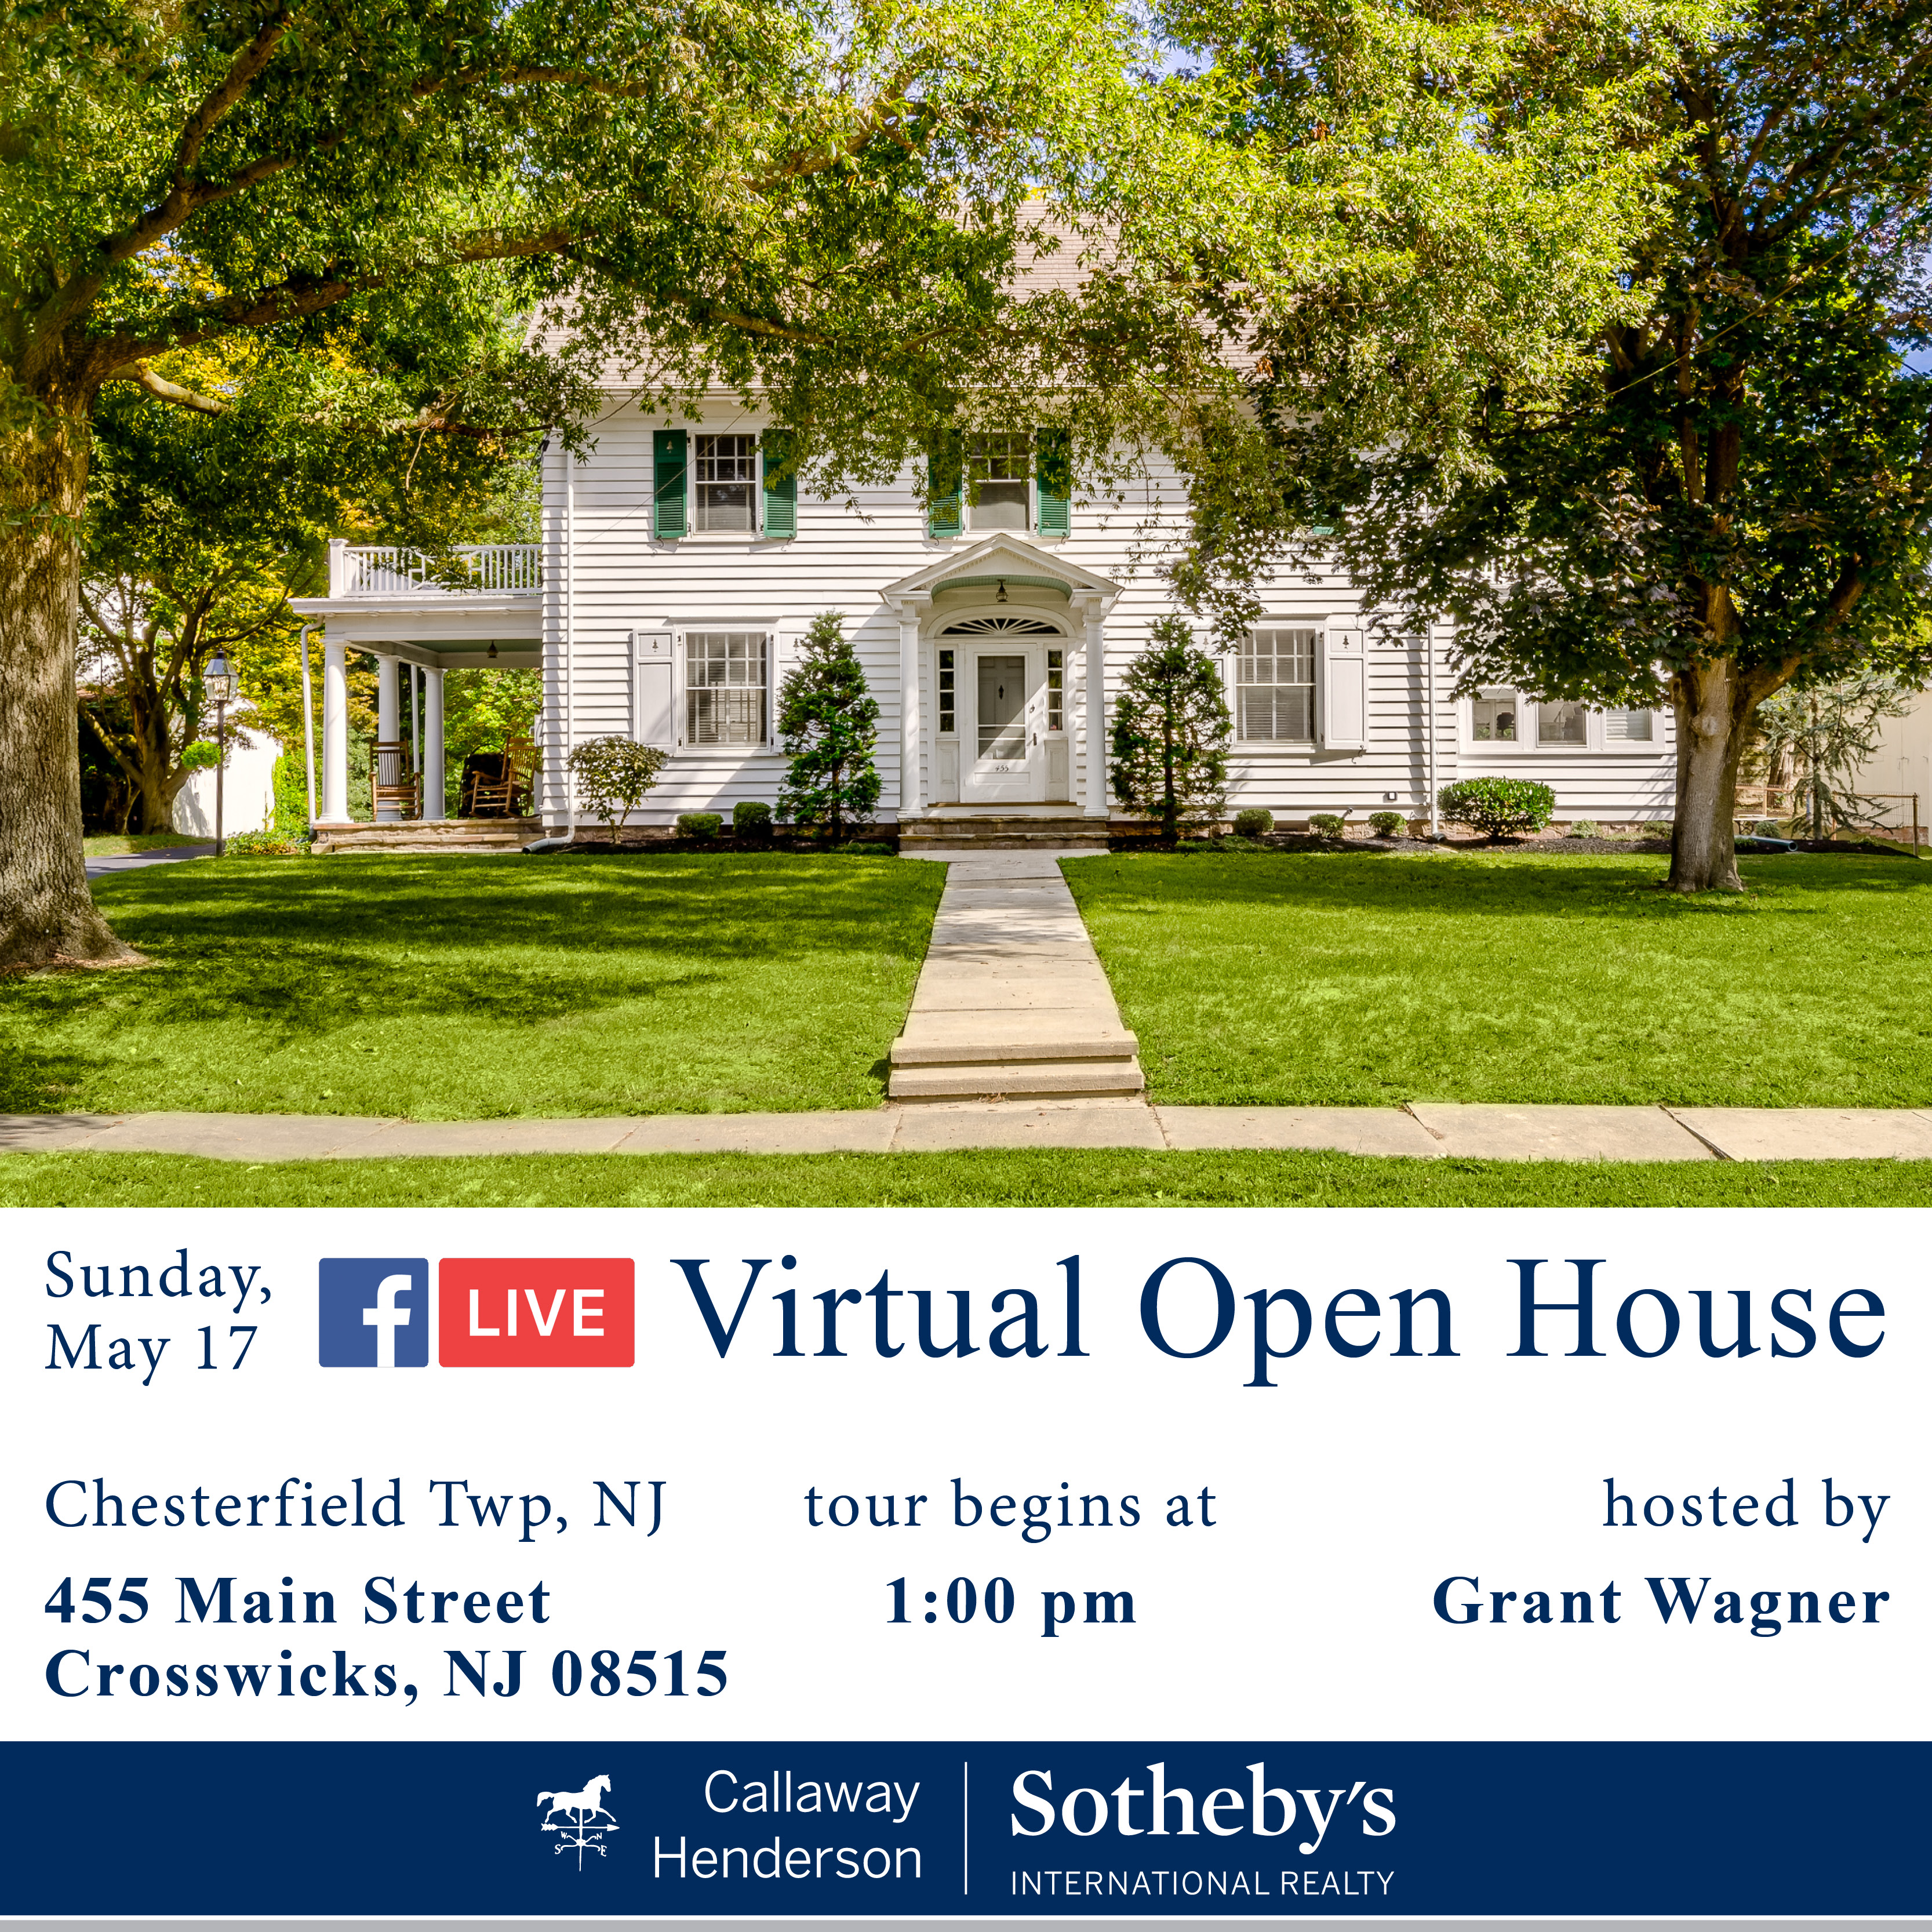 20200517 Live Virtual Open House Template-Main Street 455